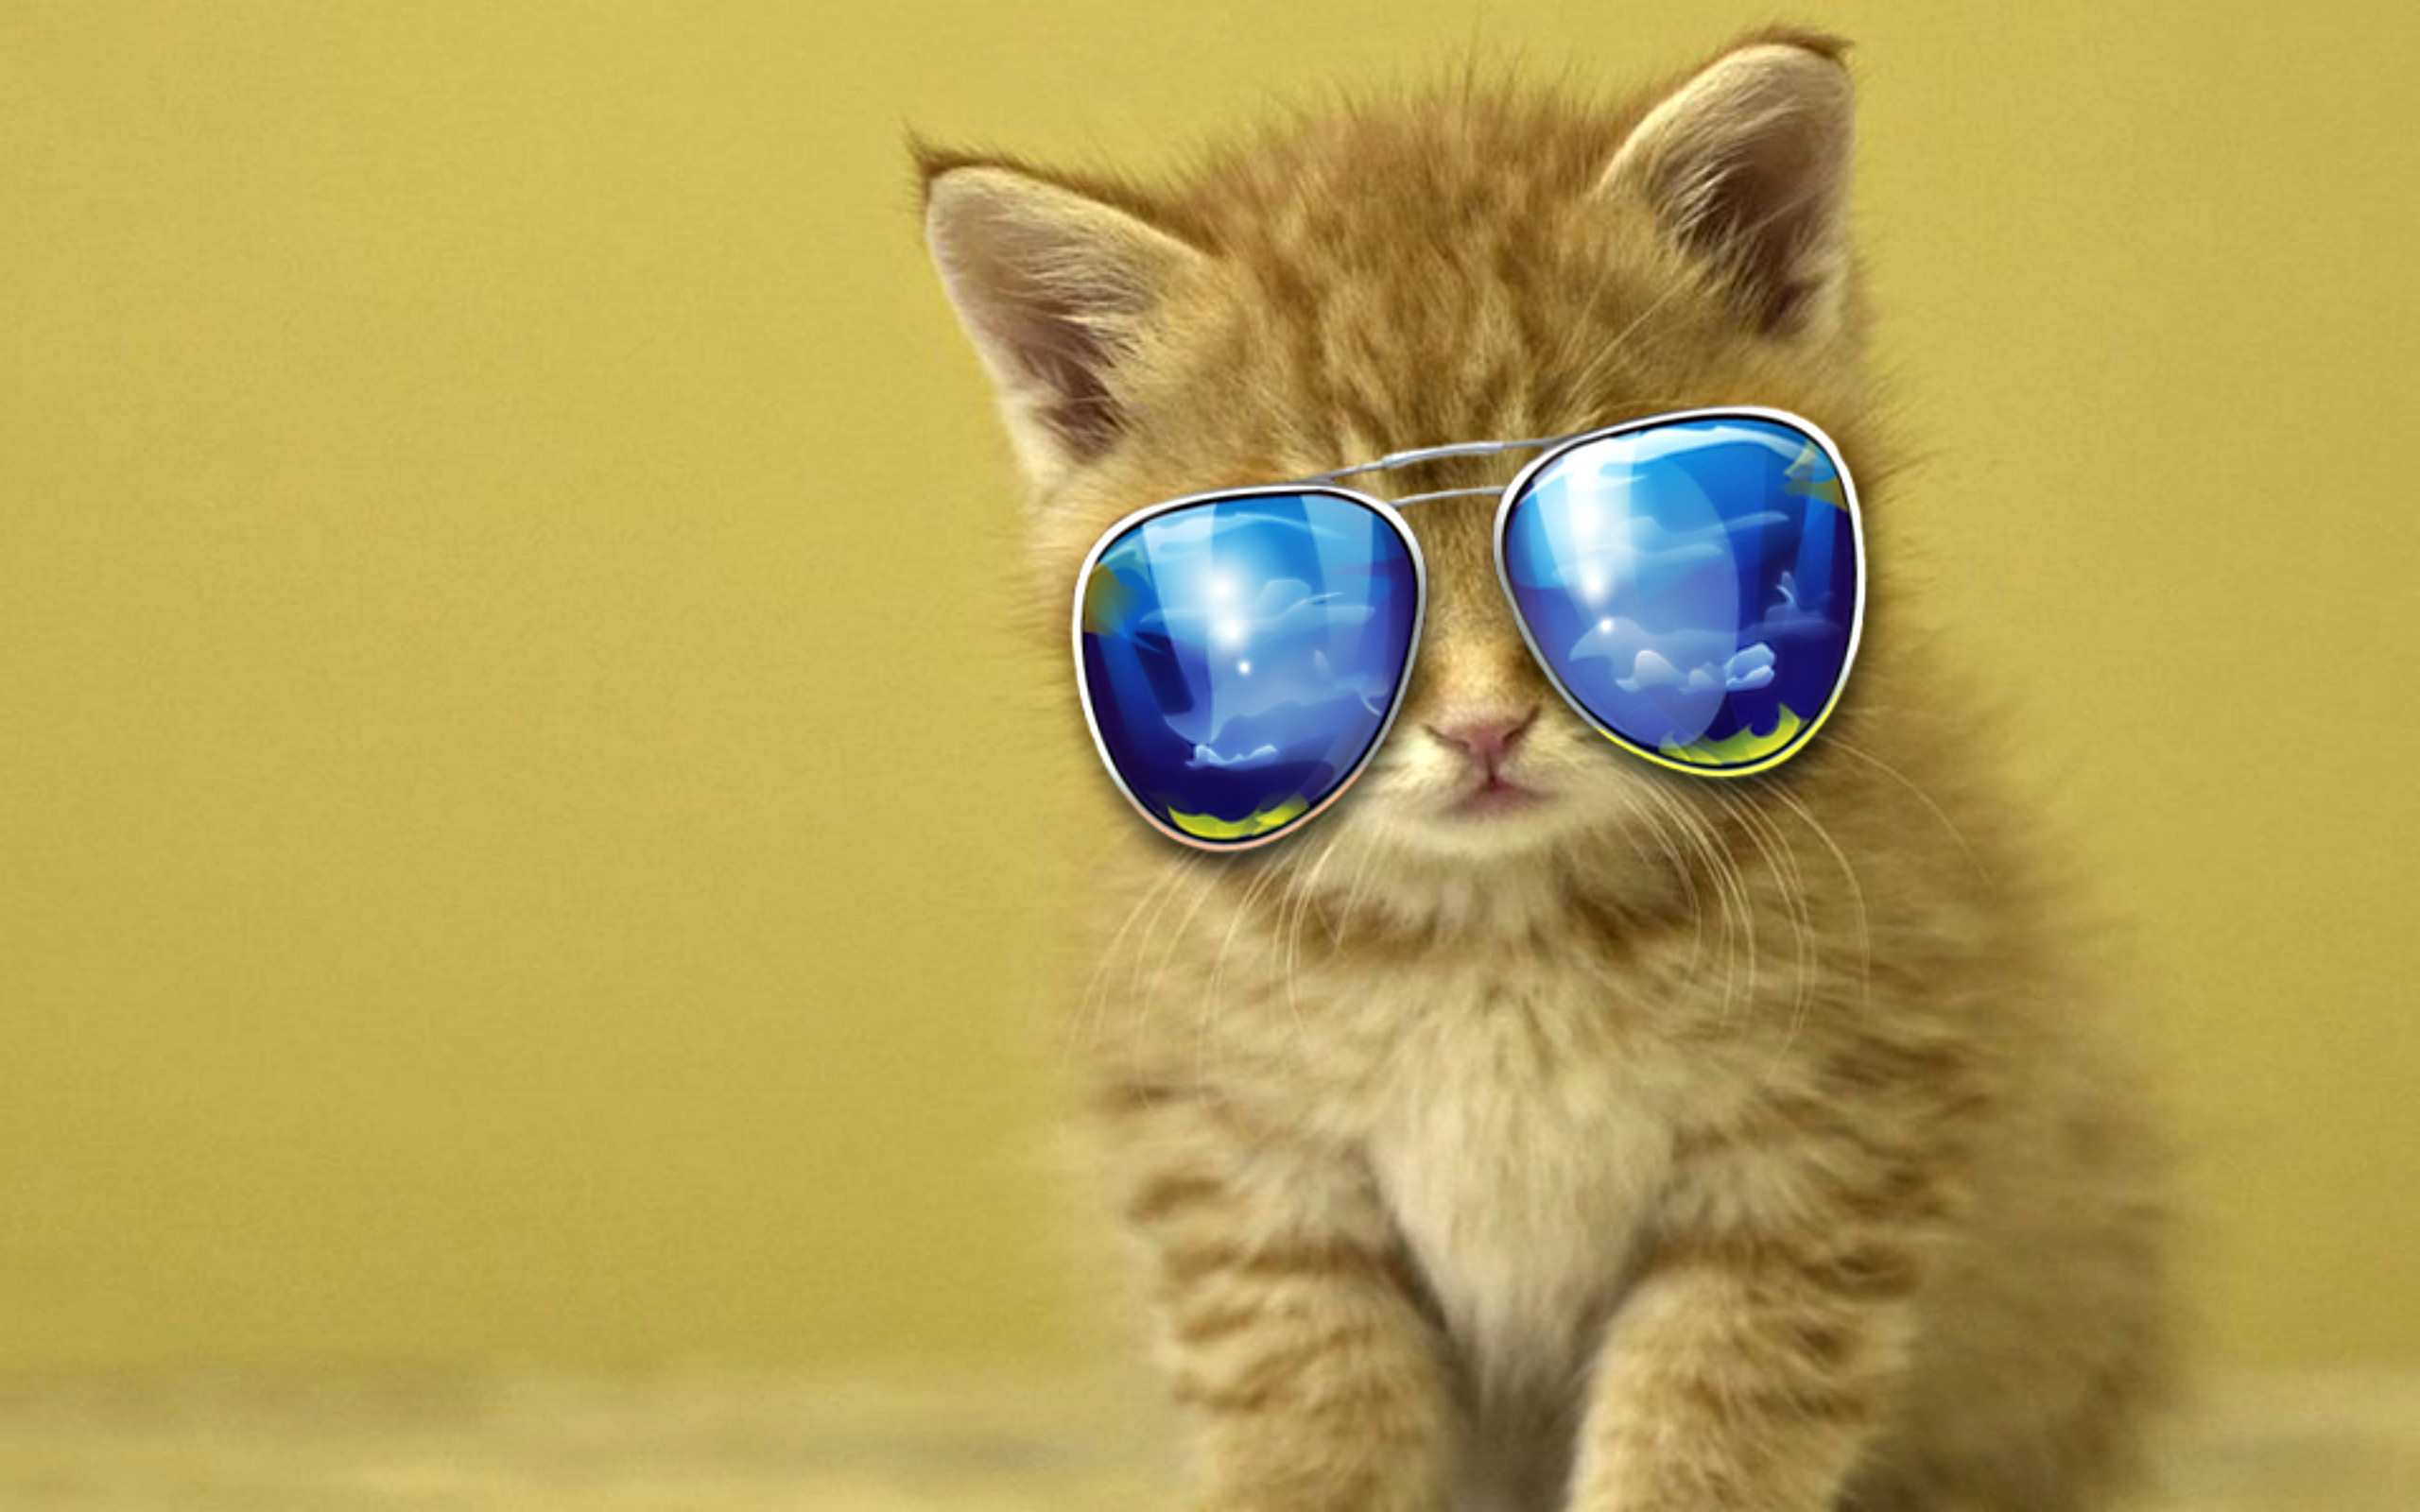 Cool cat wallpaper 71 images - Cool backgrounds of cats ...